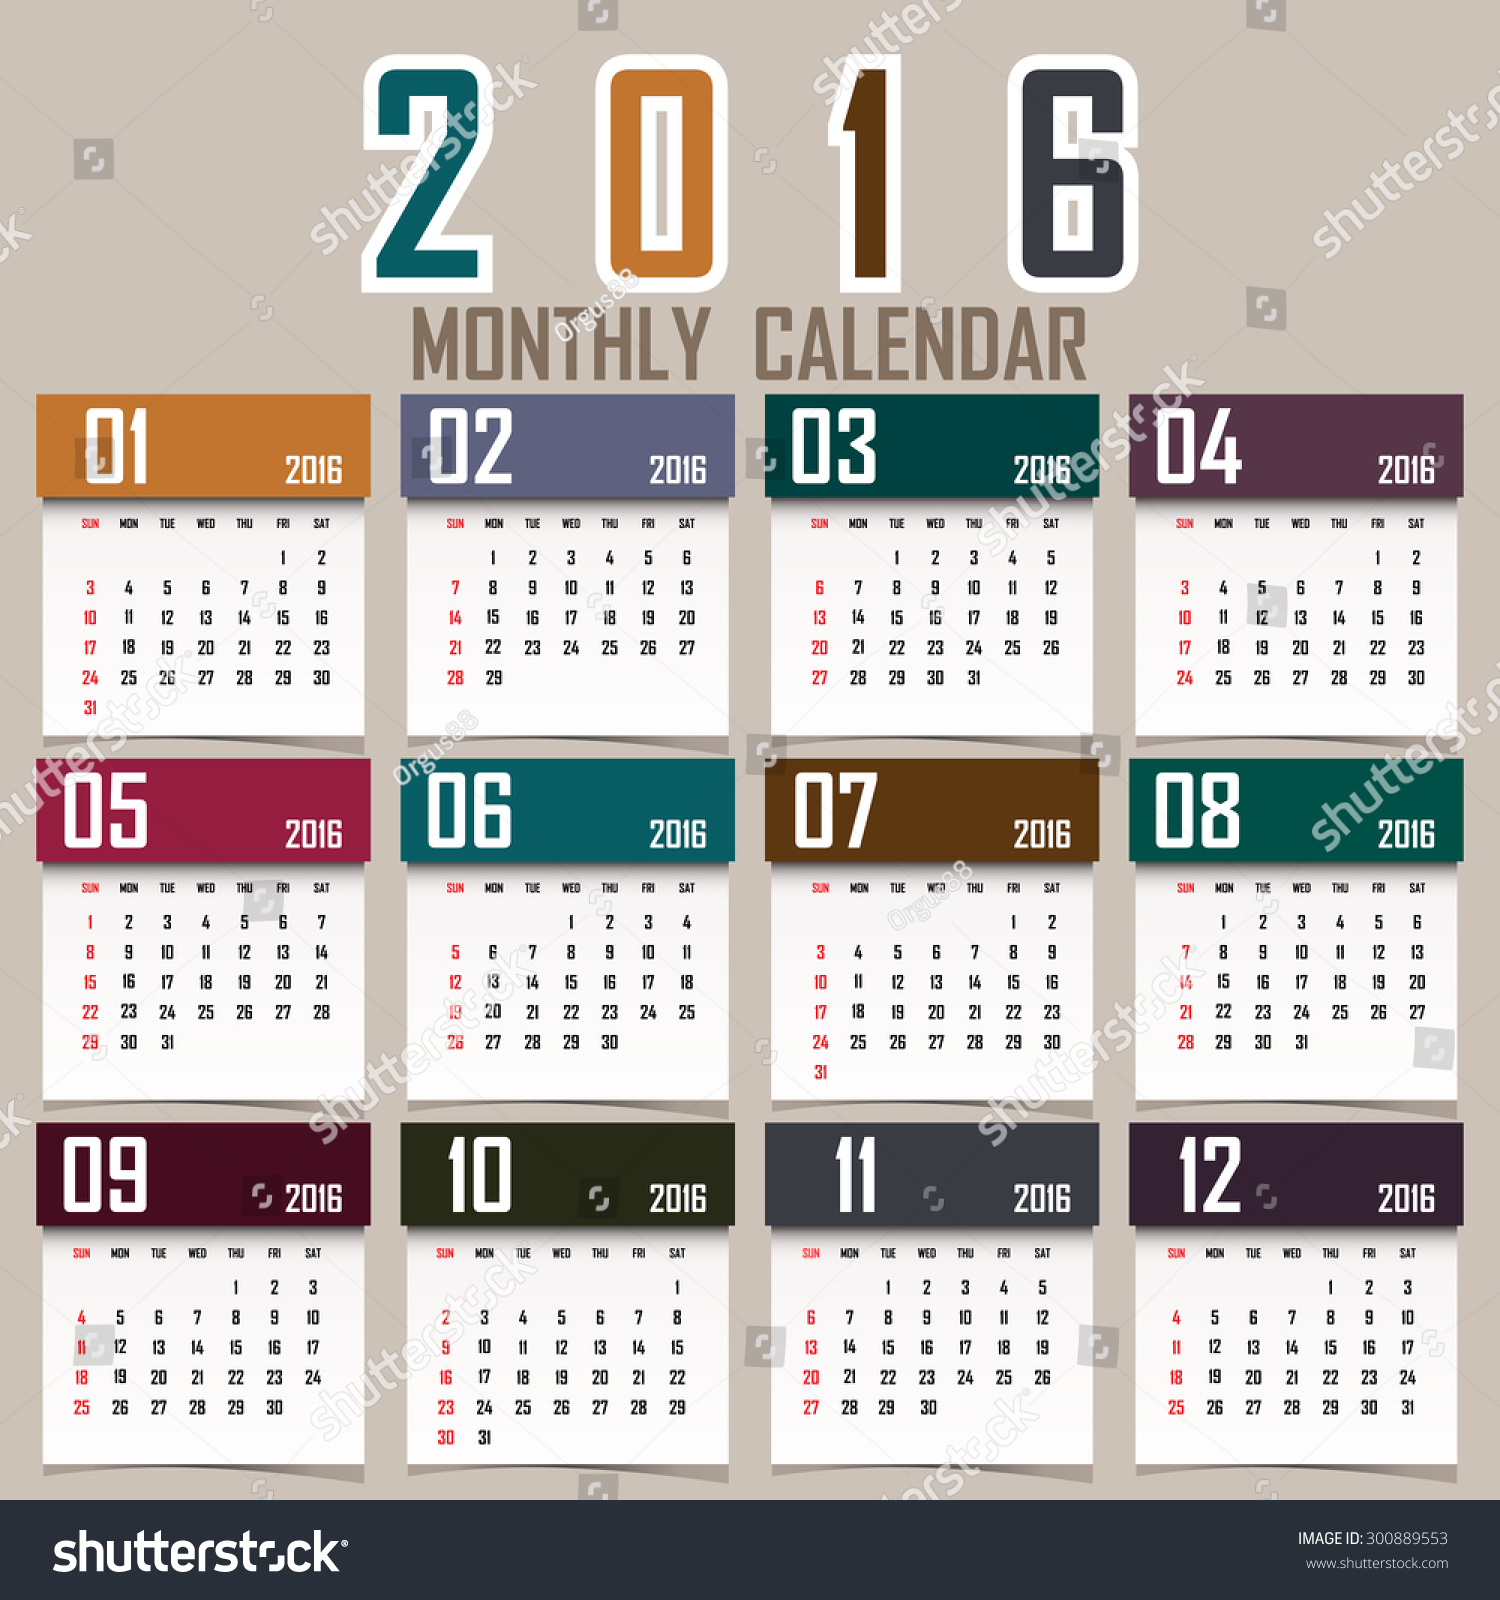 Vertical Calendar Design : Simple calendar design stock vector